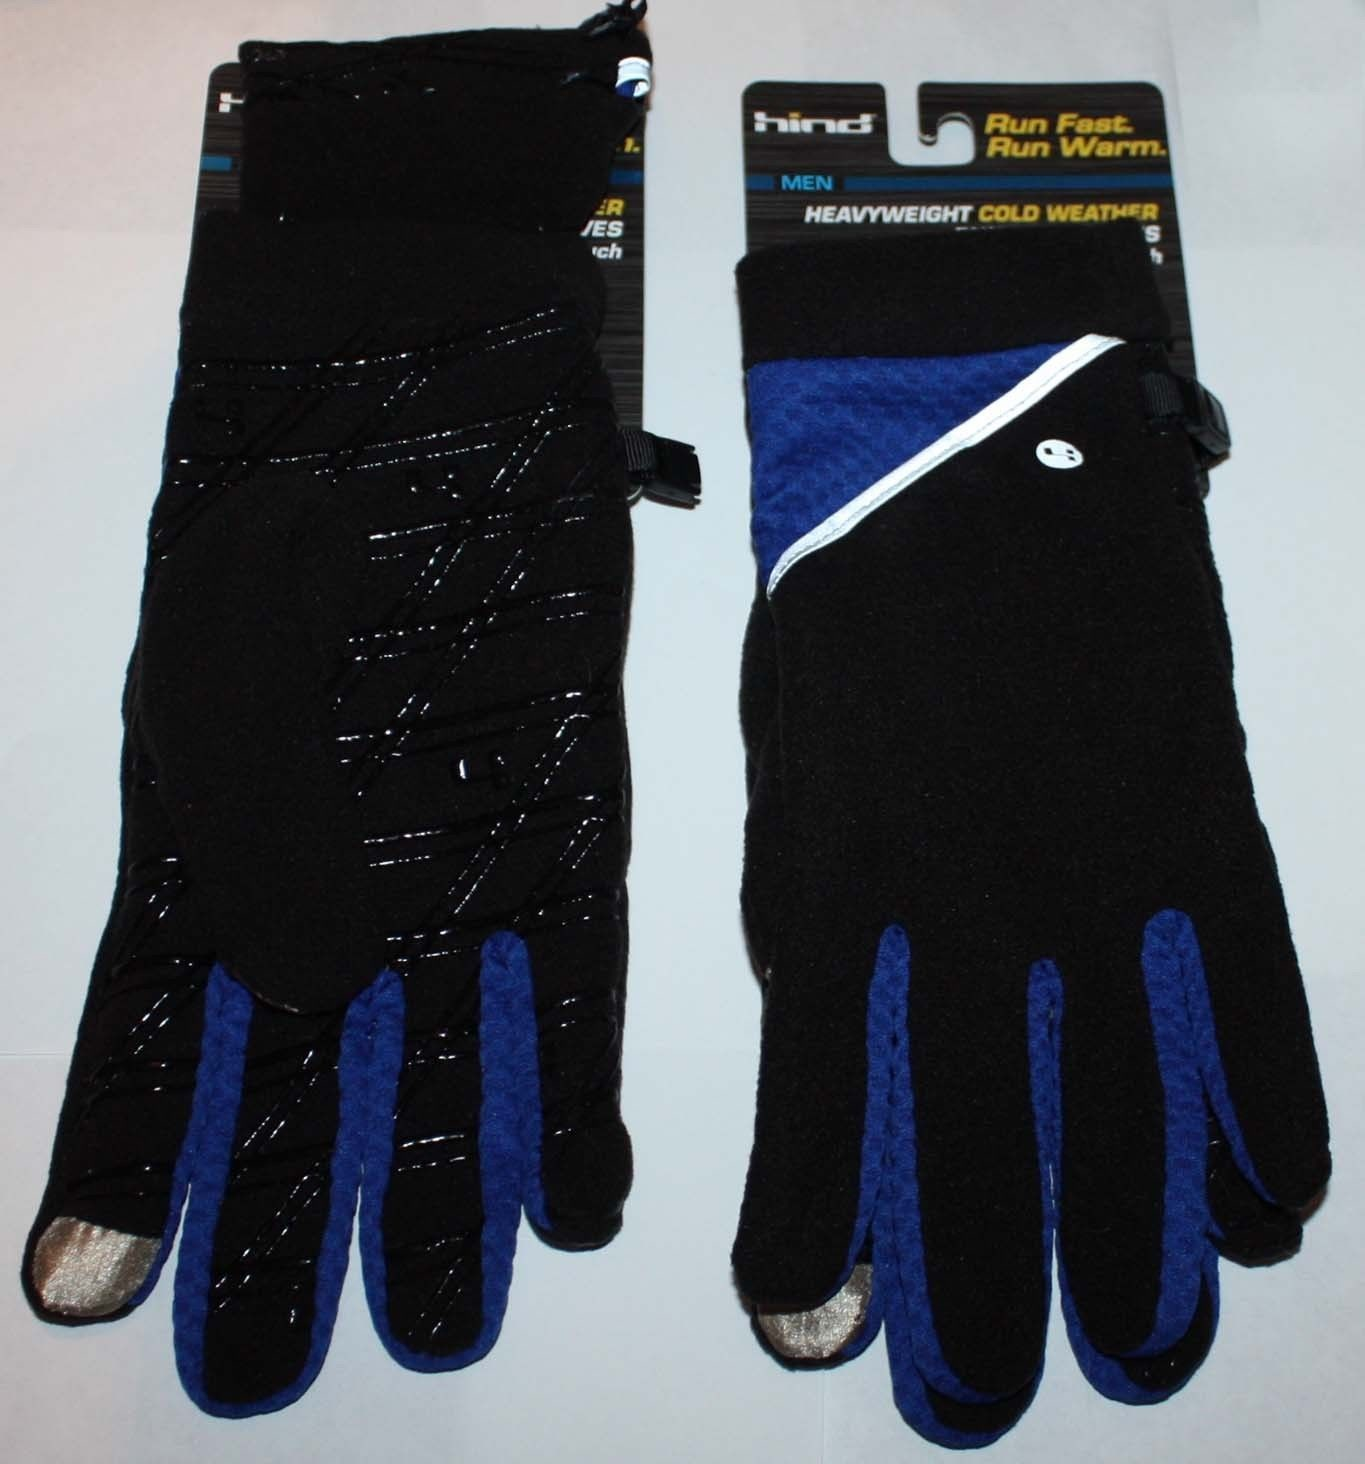 Hind Men's Heavyweight Black/Royal Blue Smart Touch Running Gloves (Large/X-Large)